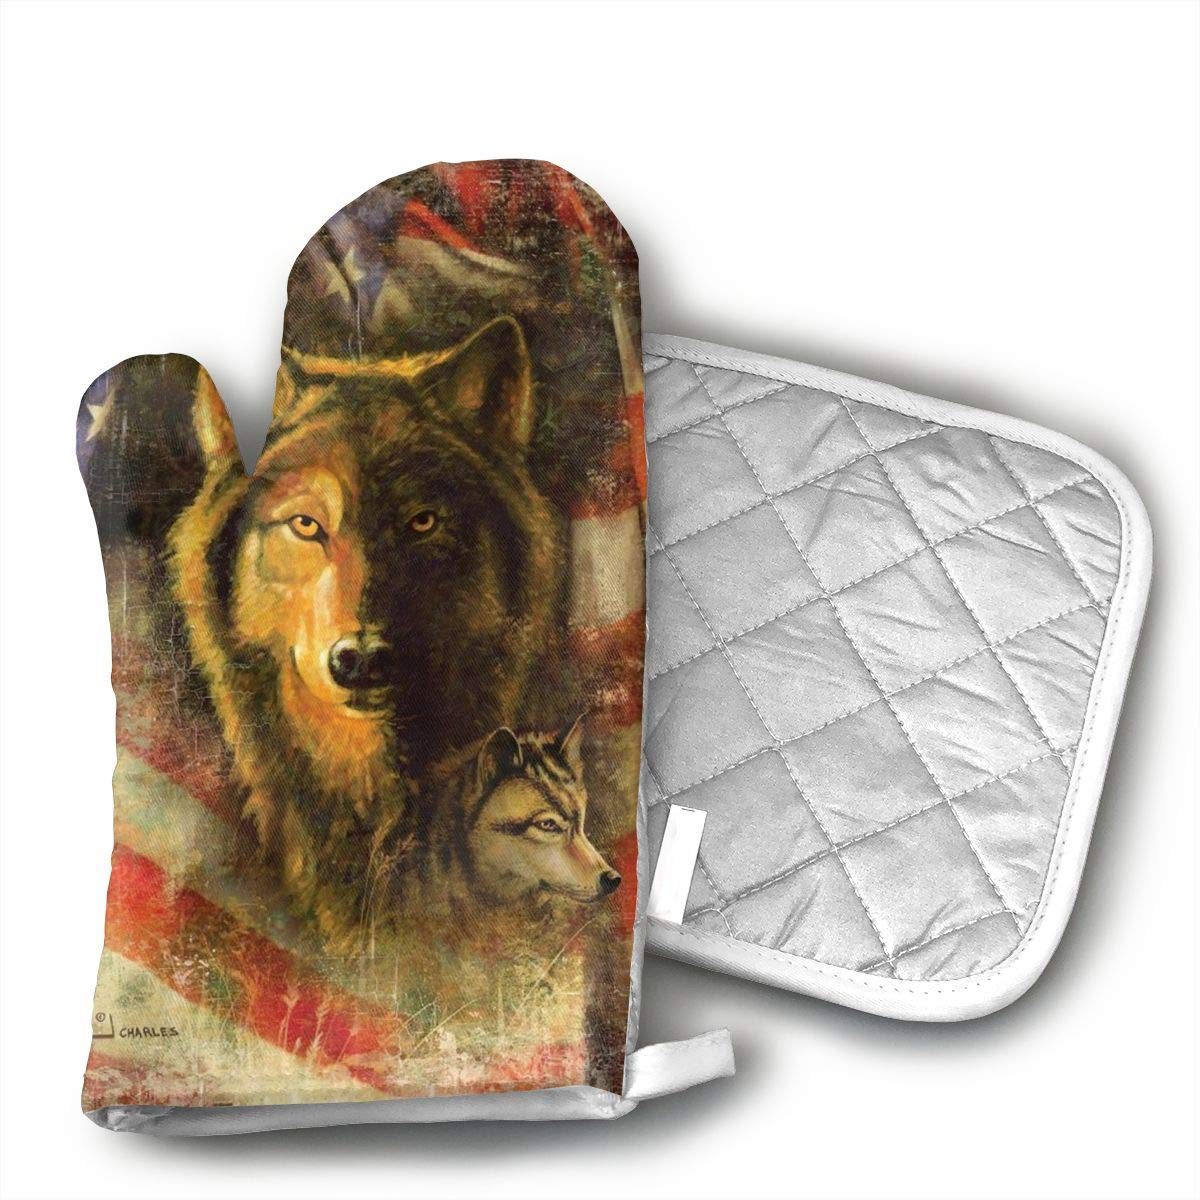 Wiqo9 Wolf and Patriotic American Flag Oven Mitts and Pot Holders Kitchen Mitten Cooking Gloves,Cooking, Baking, BBQ.